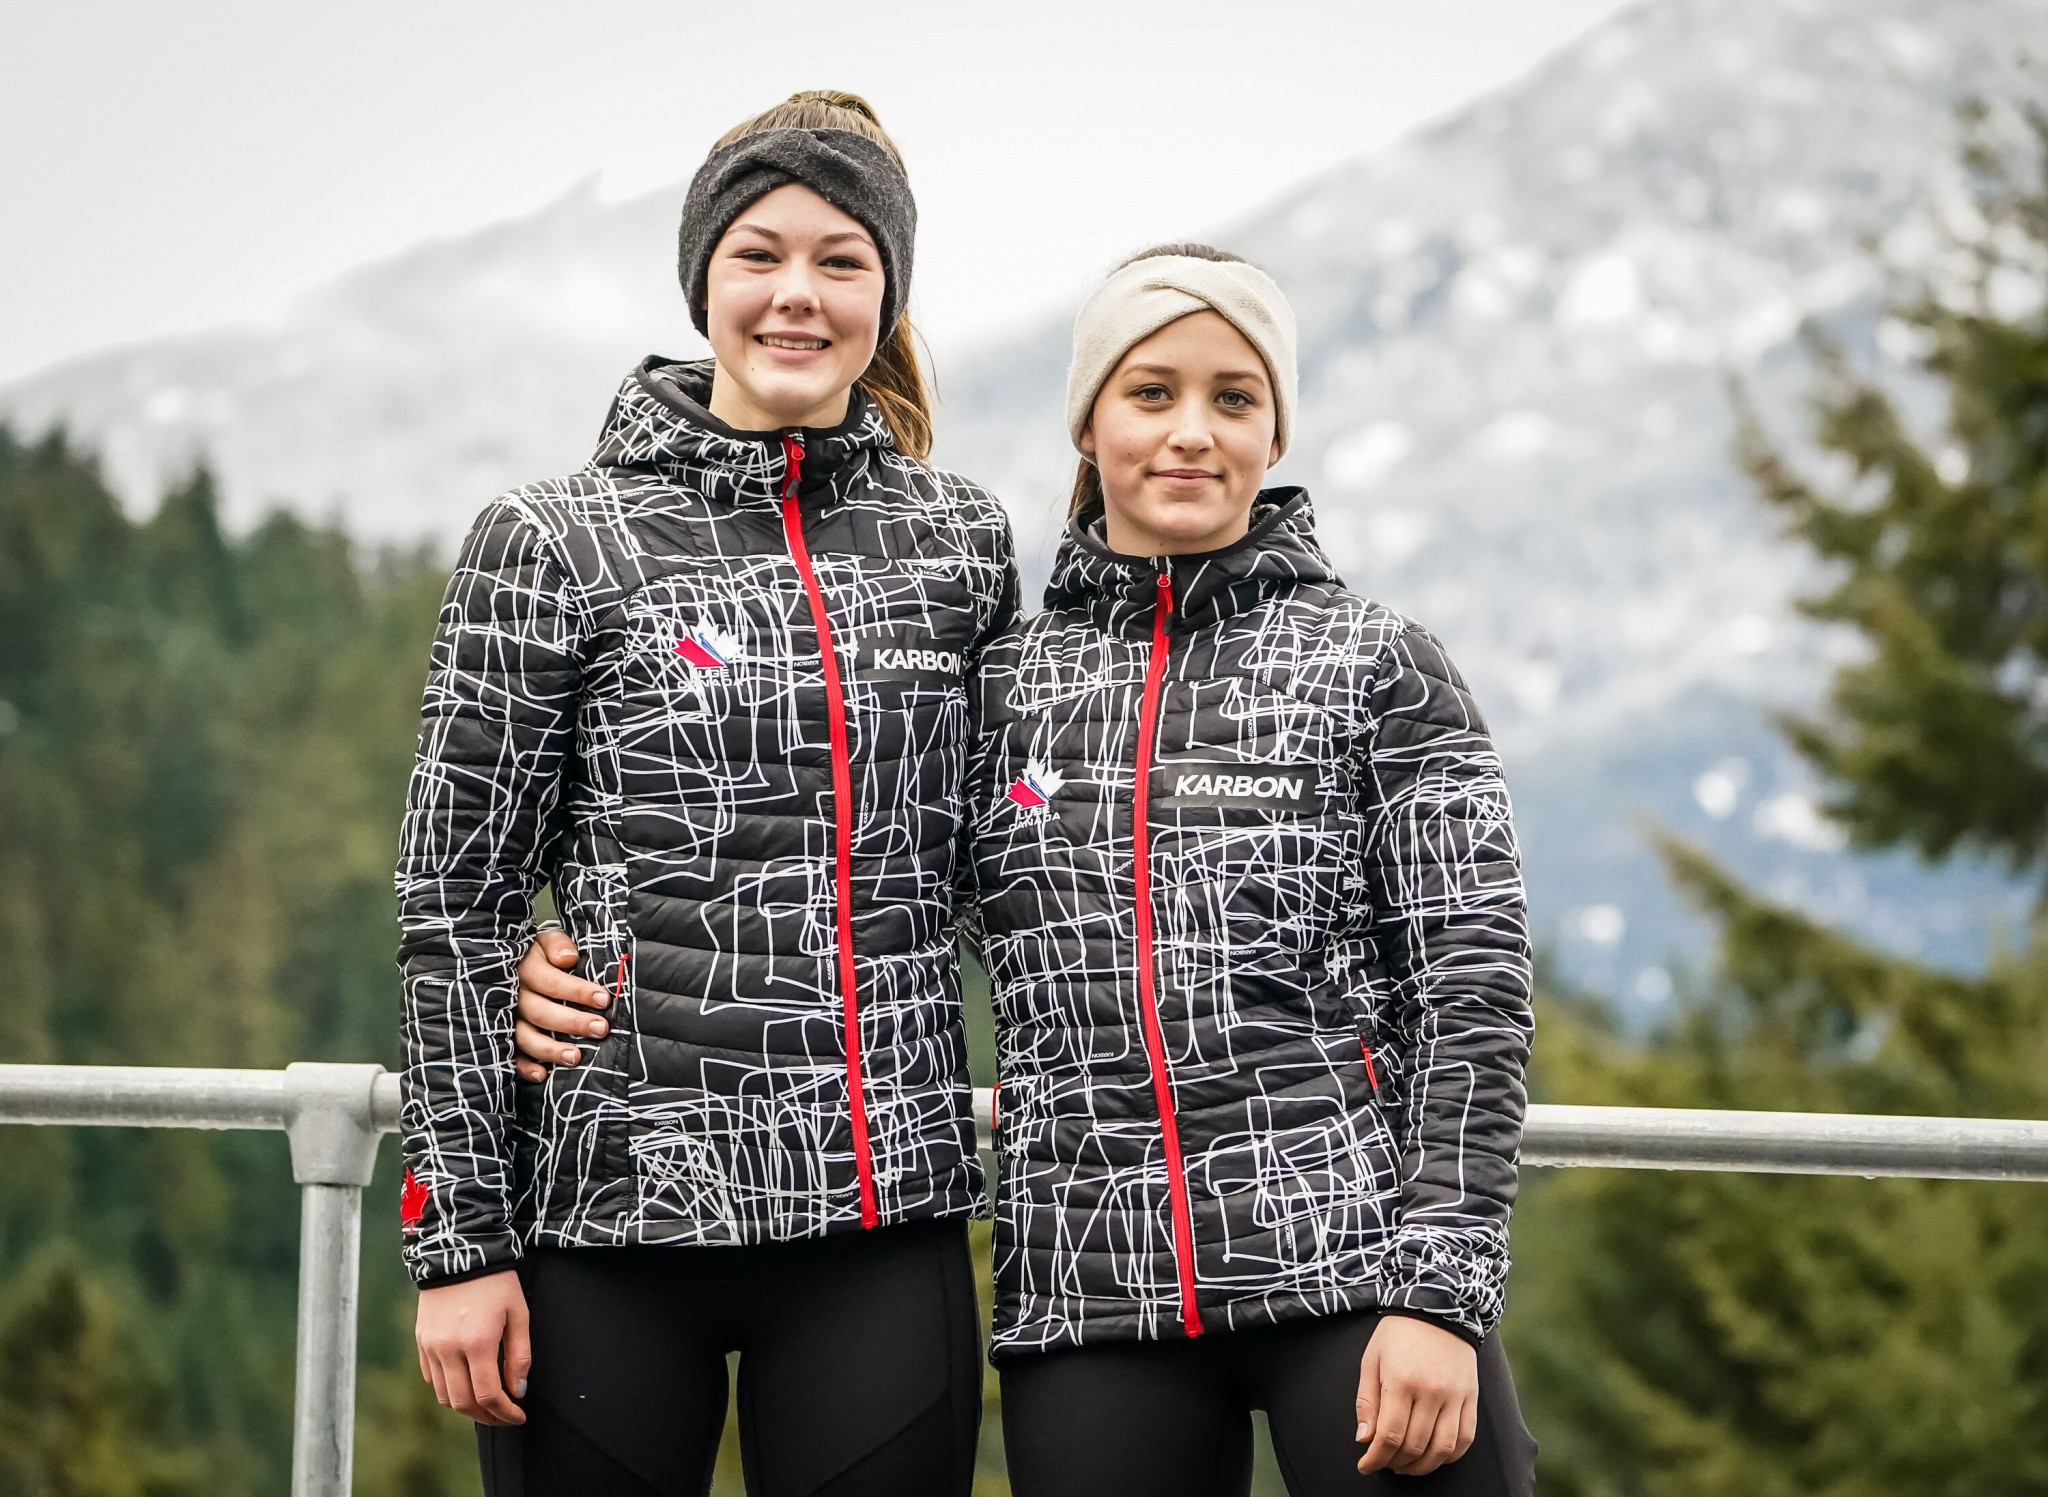 Sixteen-year-old local athletes Caitlin Nash and Natalie Corless became the first women to compete against men at the Luge World Cup ©Dave Holland/Luge Canada